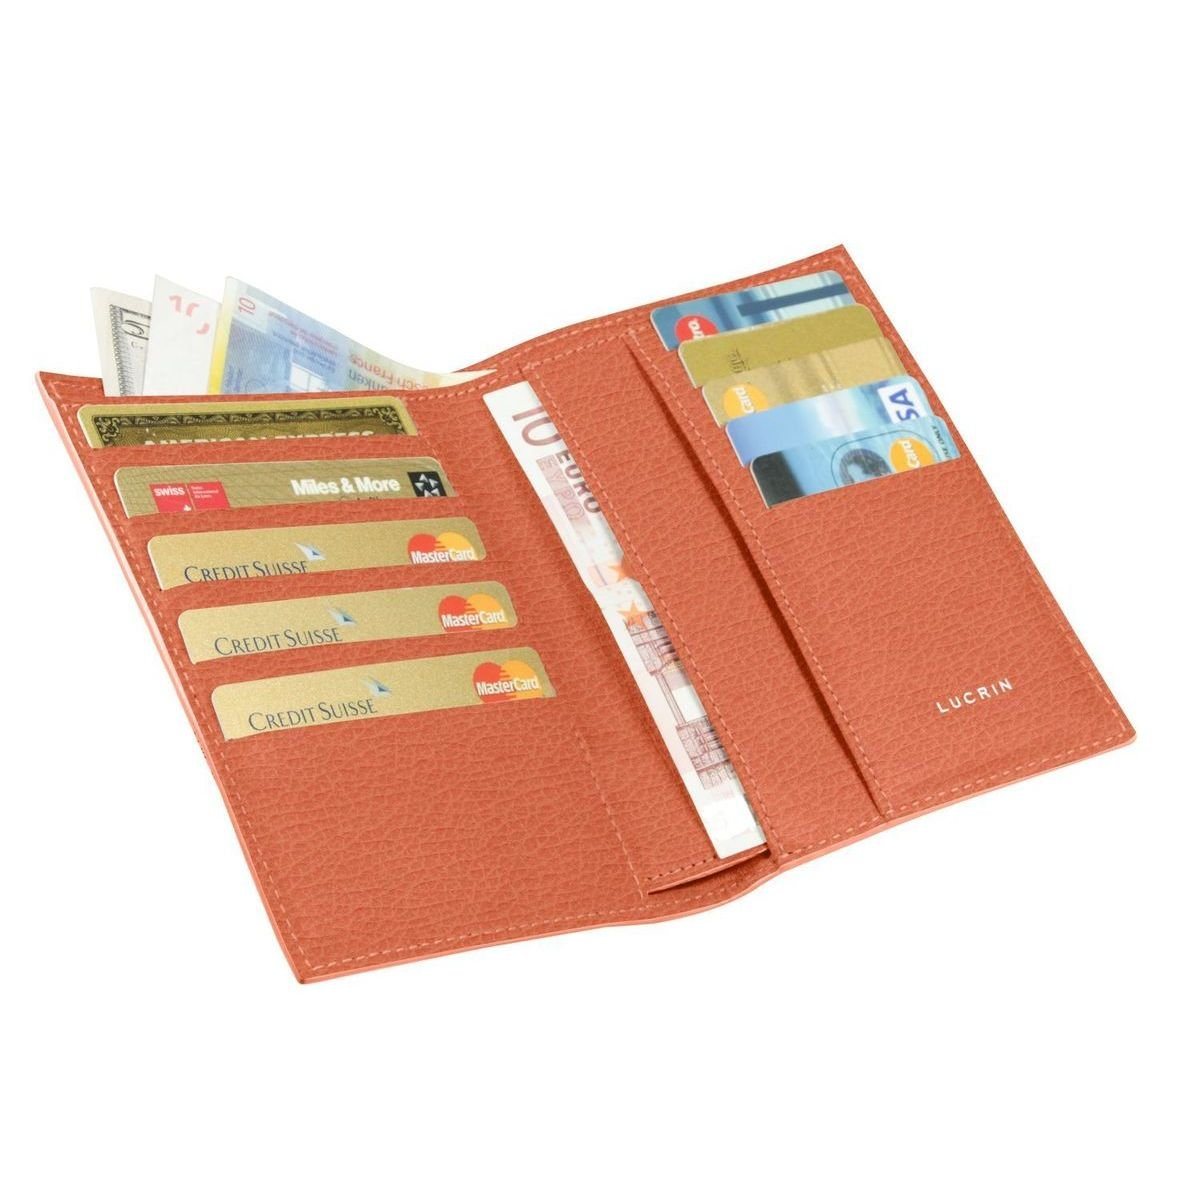 Lucrin - Wallet and card holder - Orange - Granulated Leather